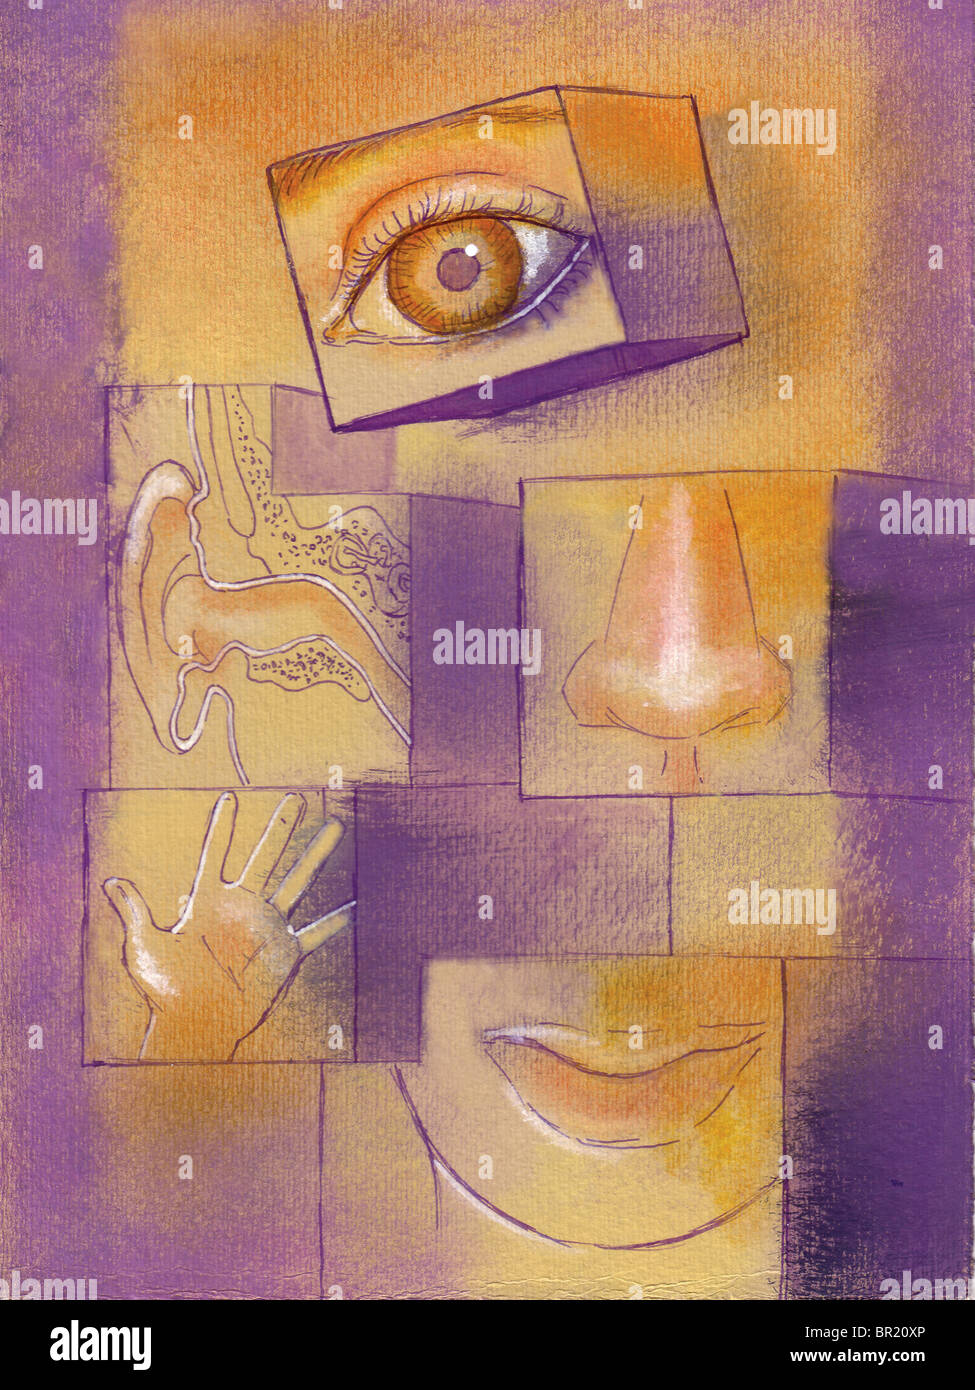 Blocks with illustrations on the five senses on them - Stock Image